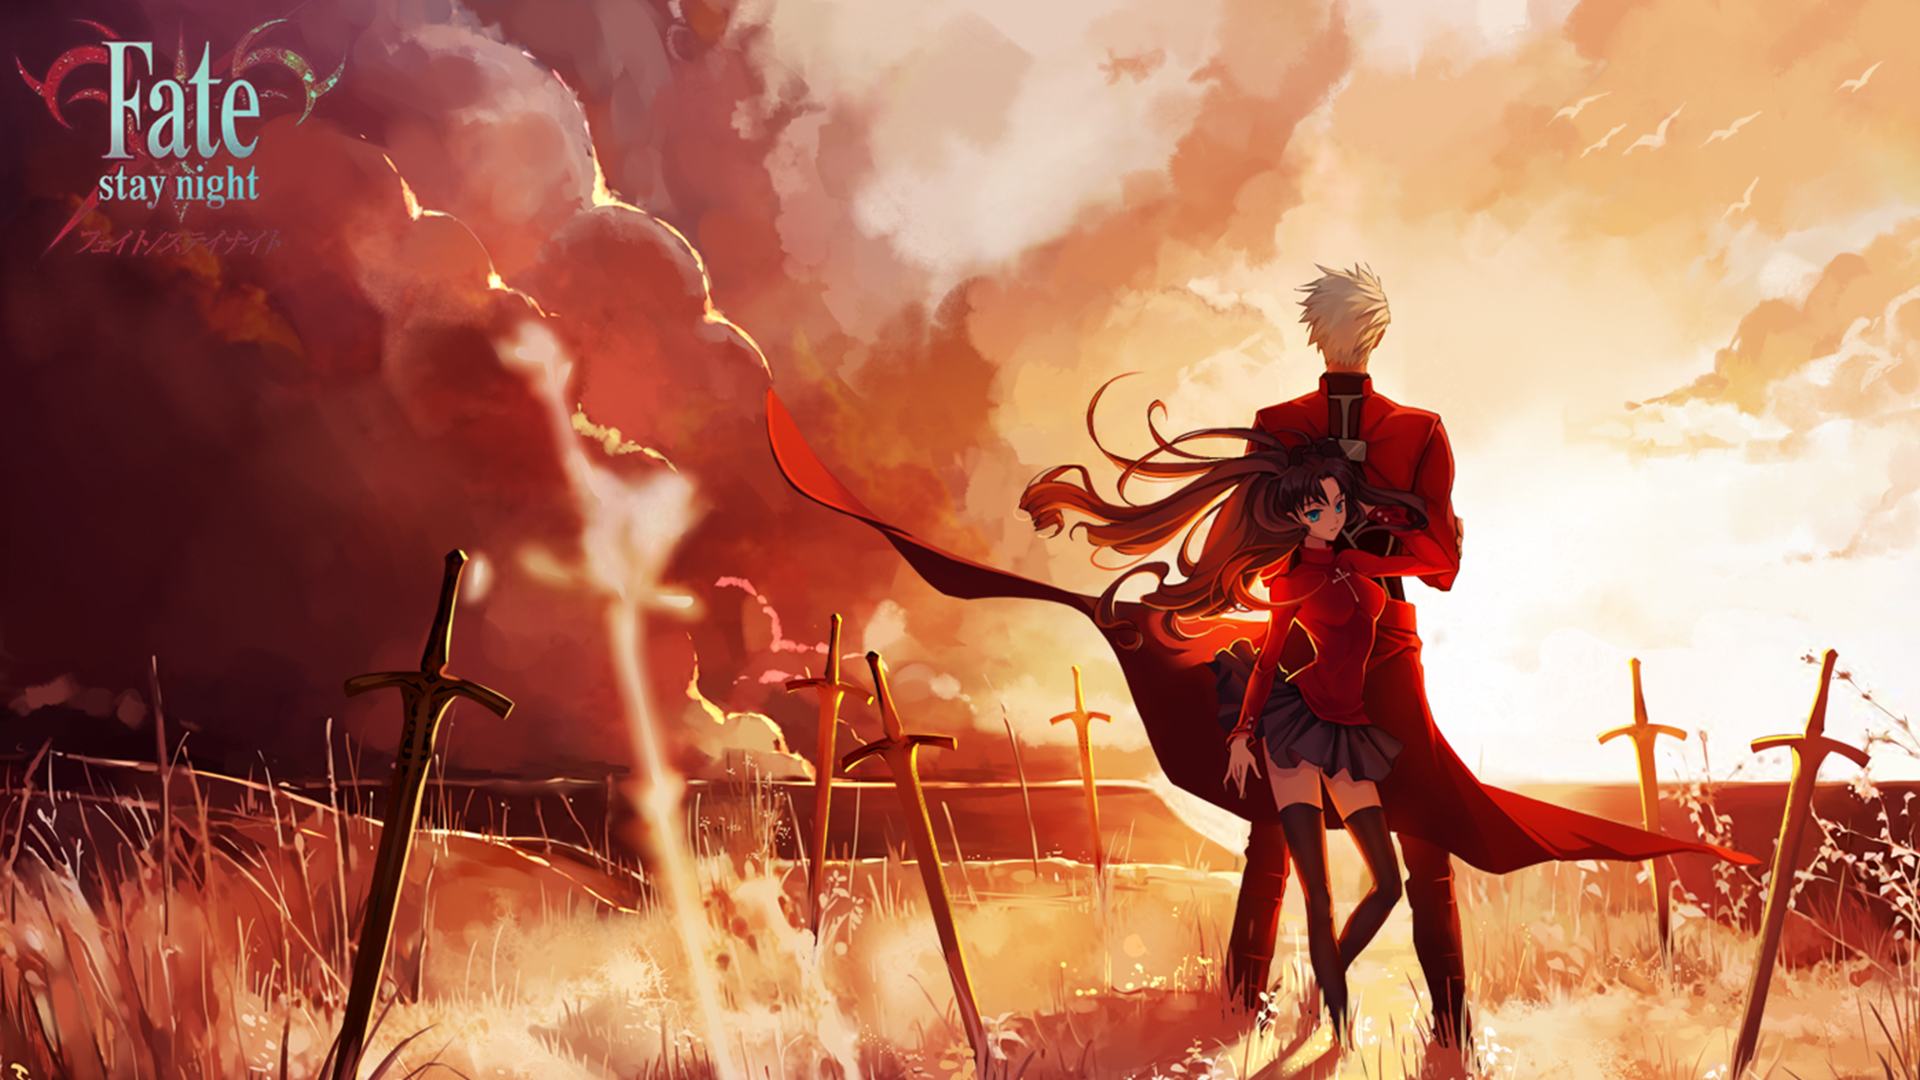 45+ Fate Stay Unlimited Blade Works Wallpaper Pics